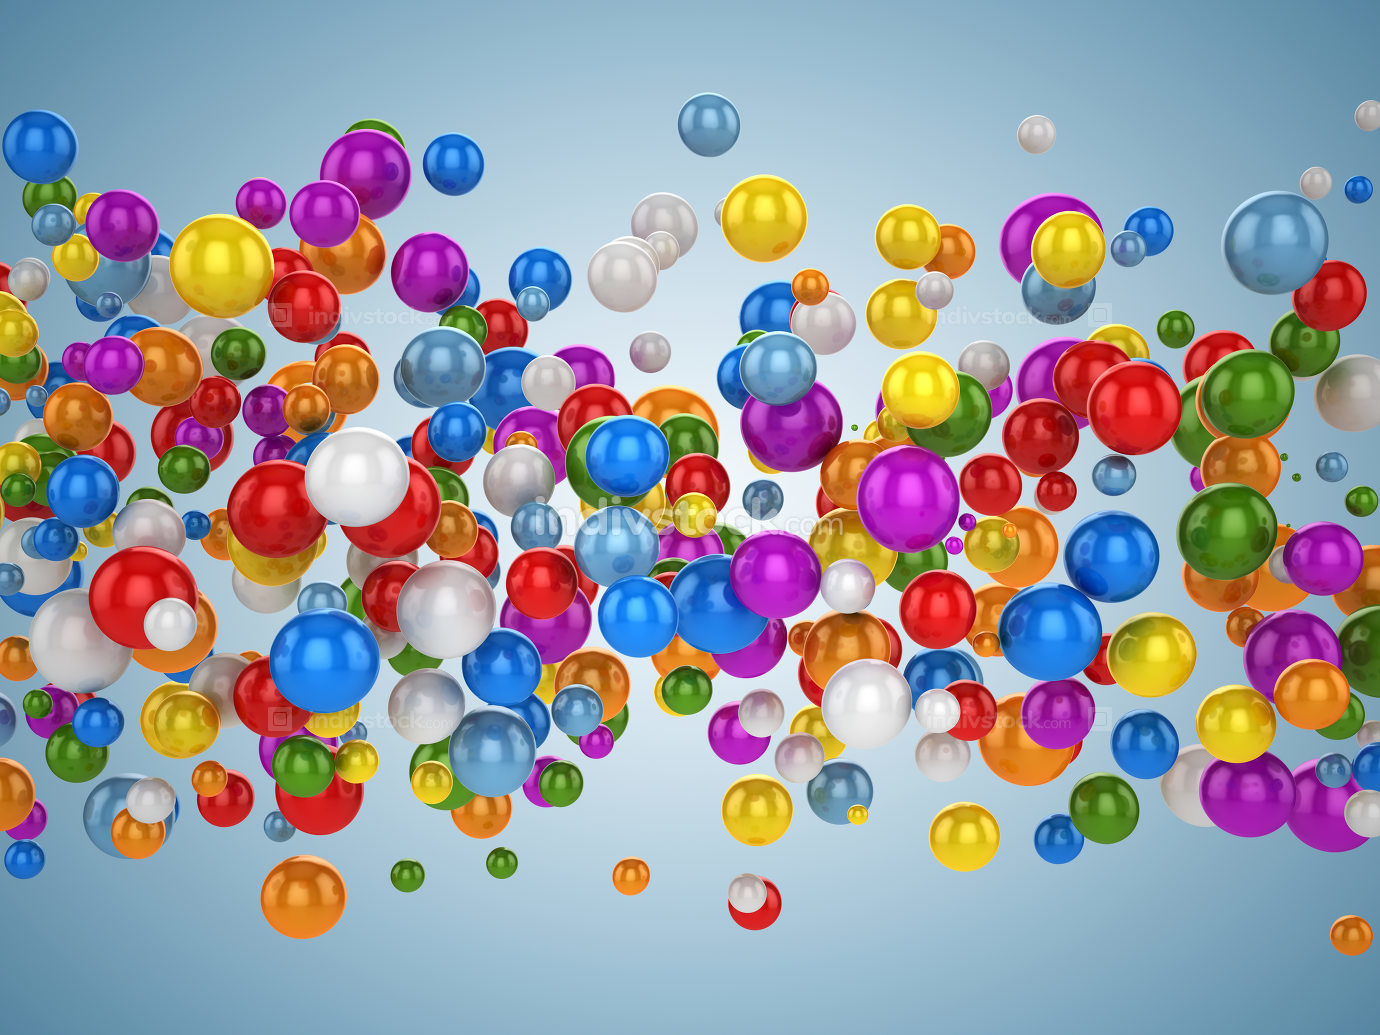 Colorful ball background 3d rendered picture